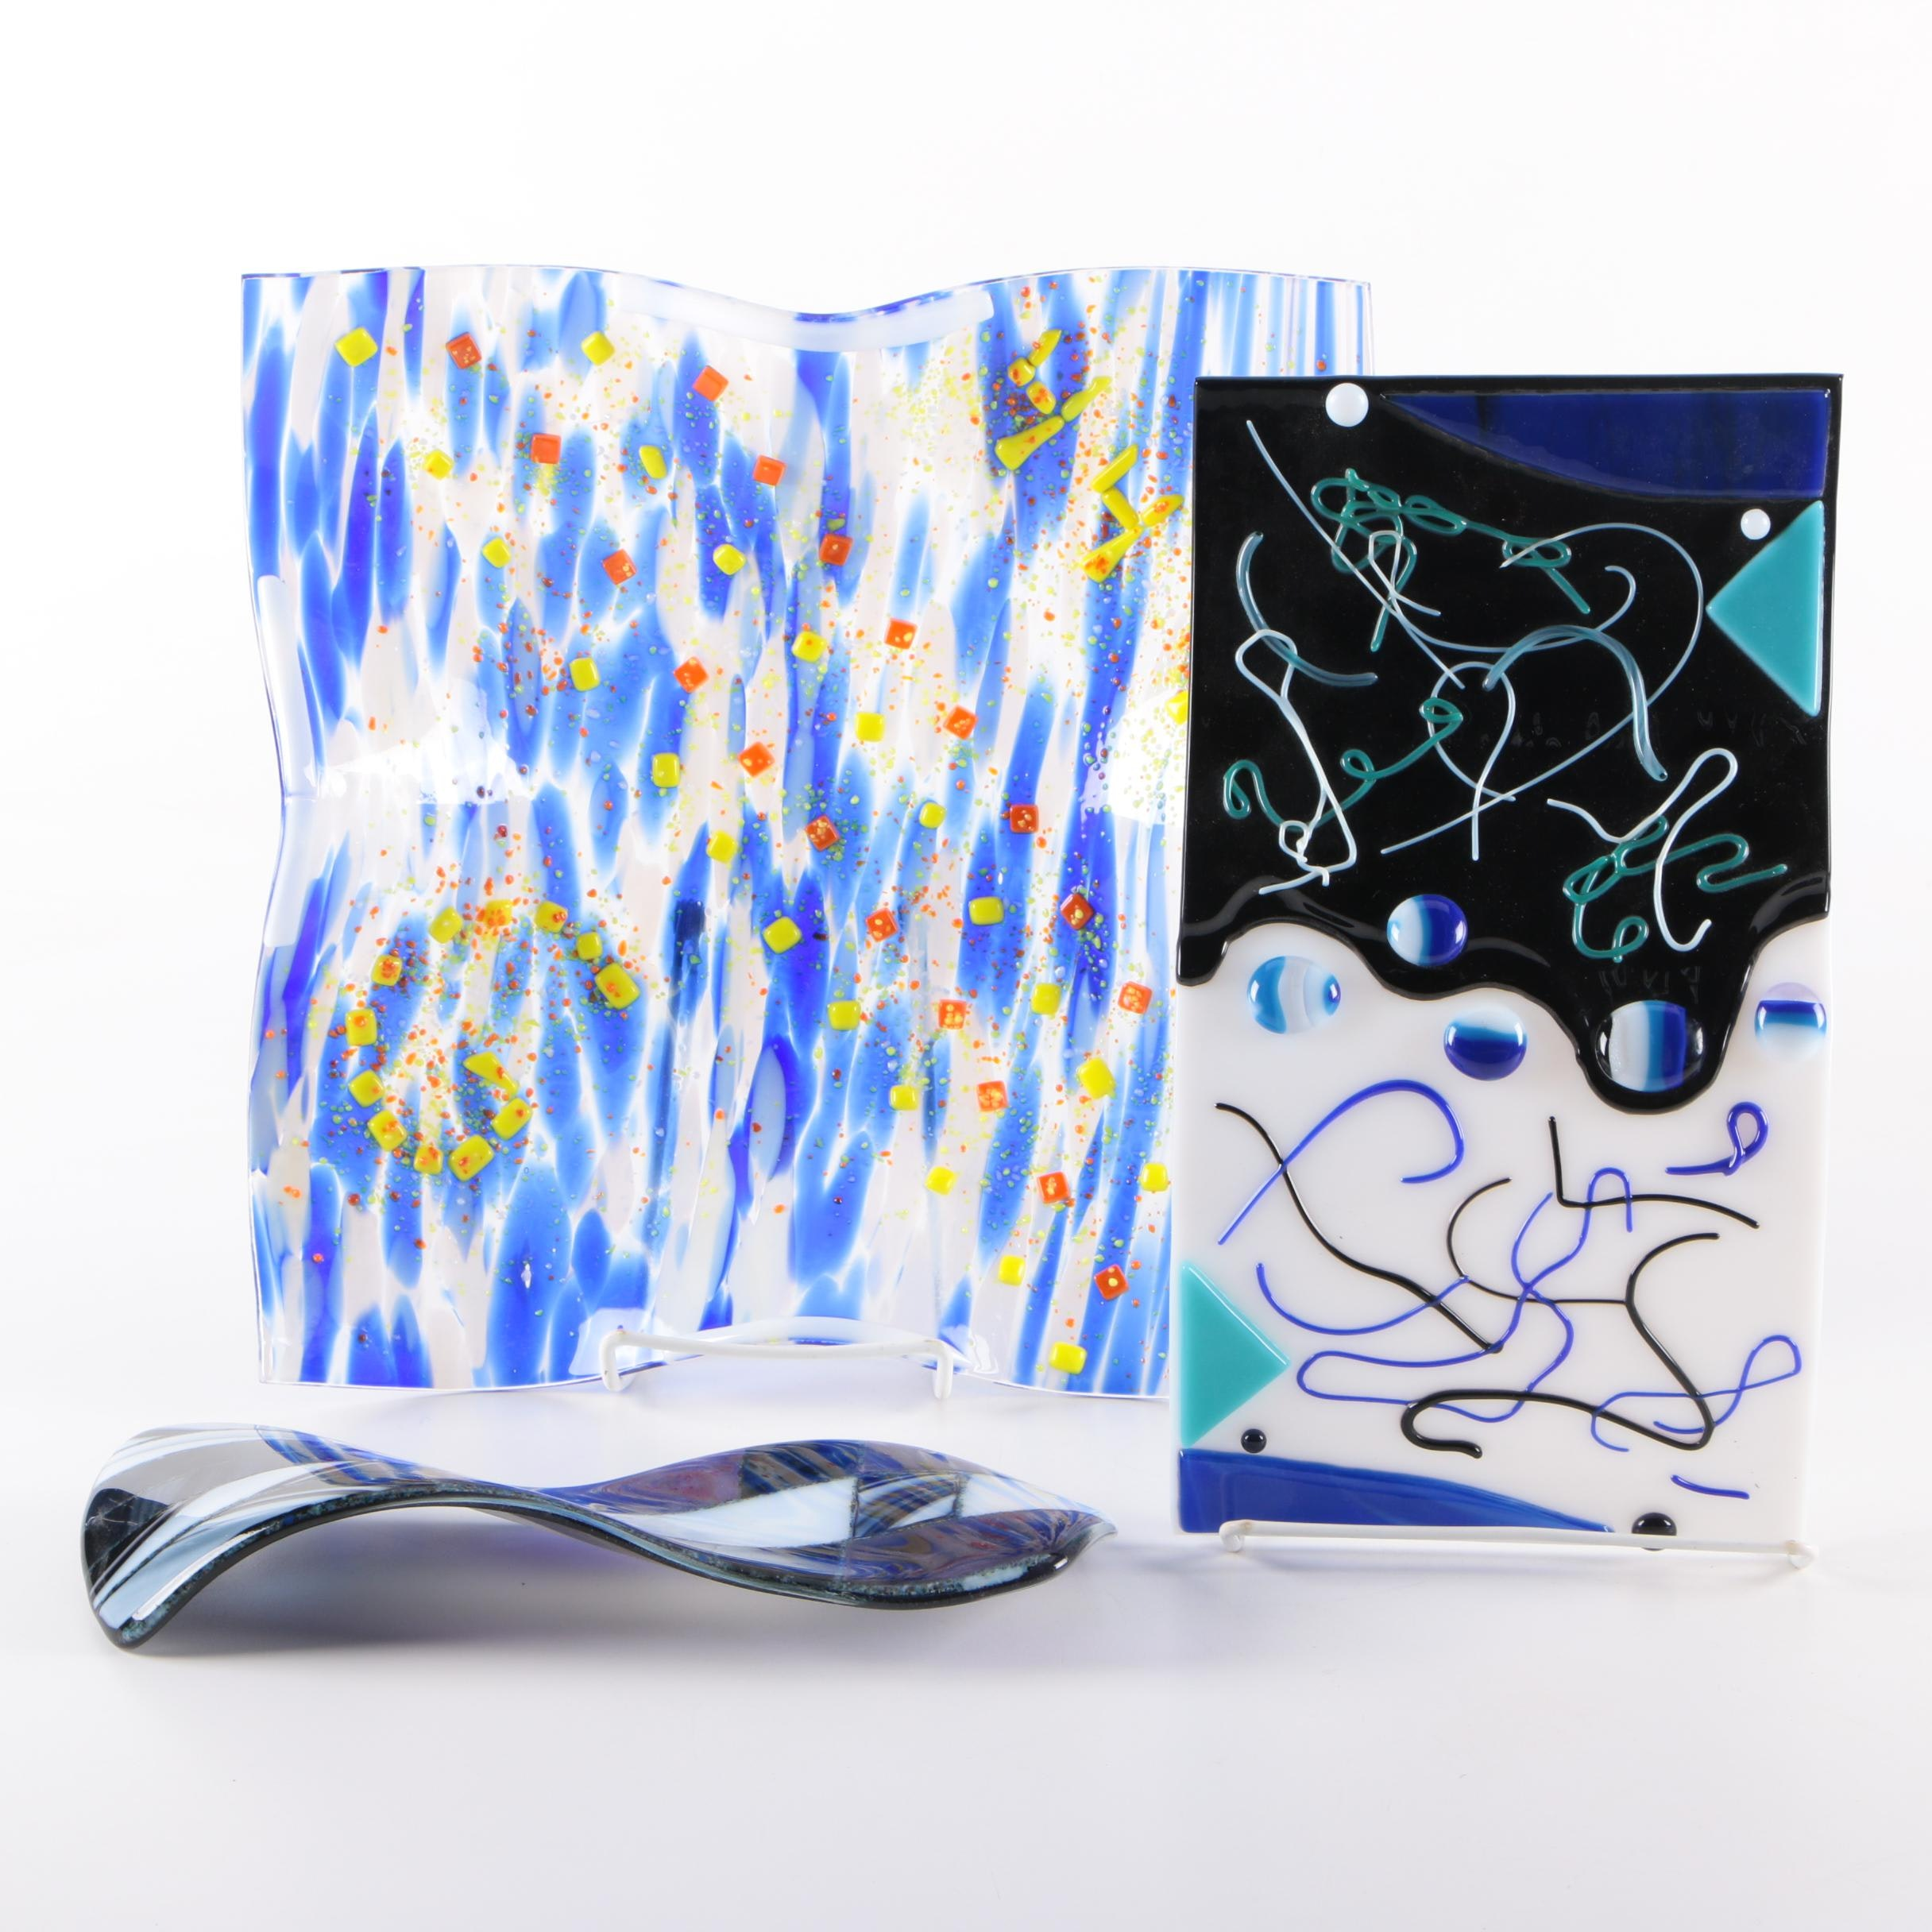 Free Form Art Glass Grouping